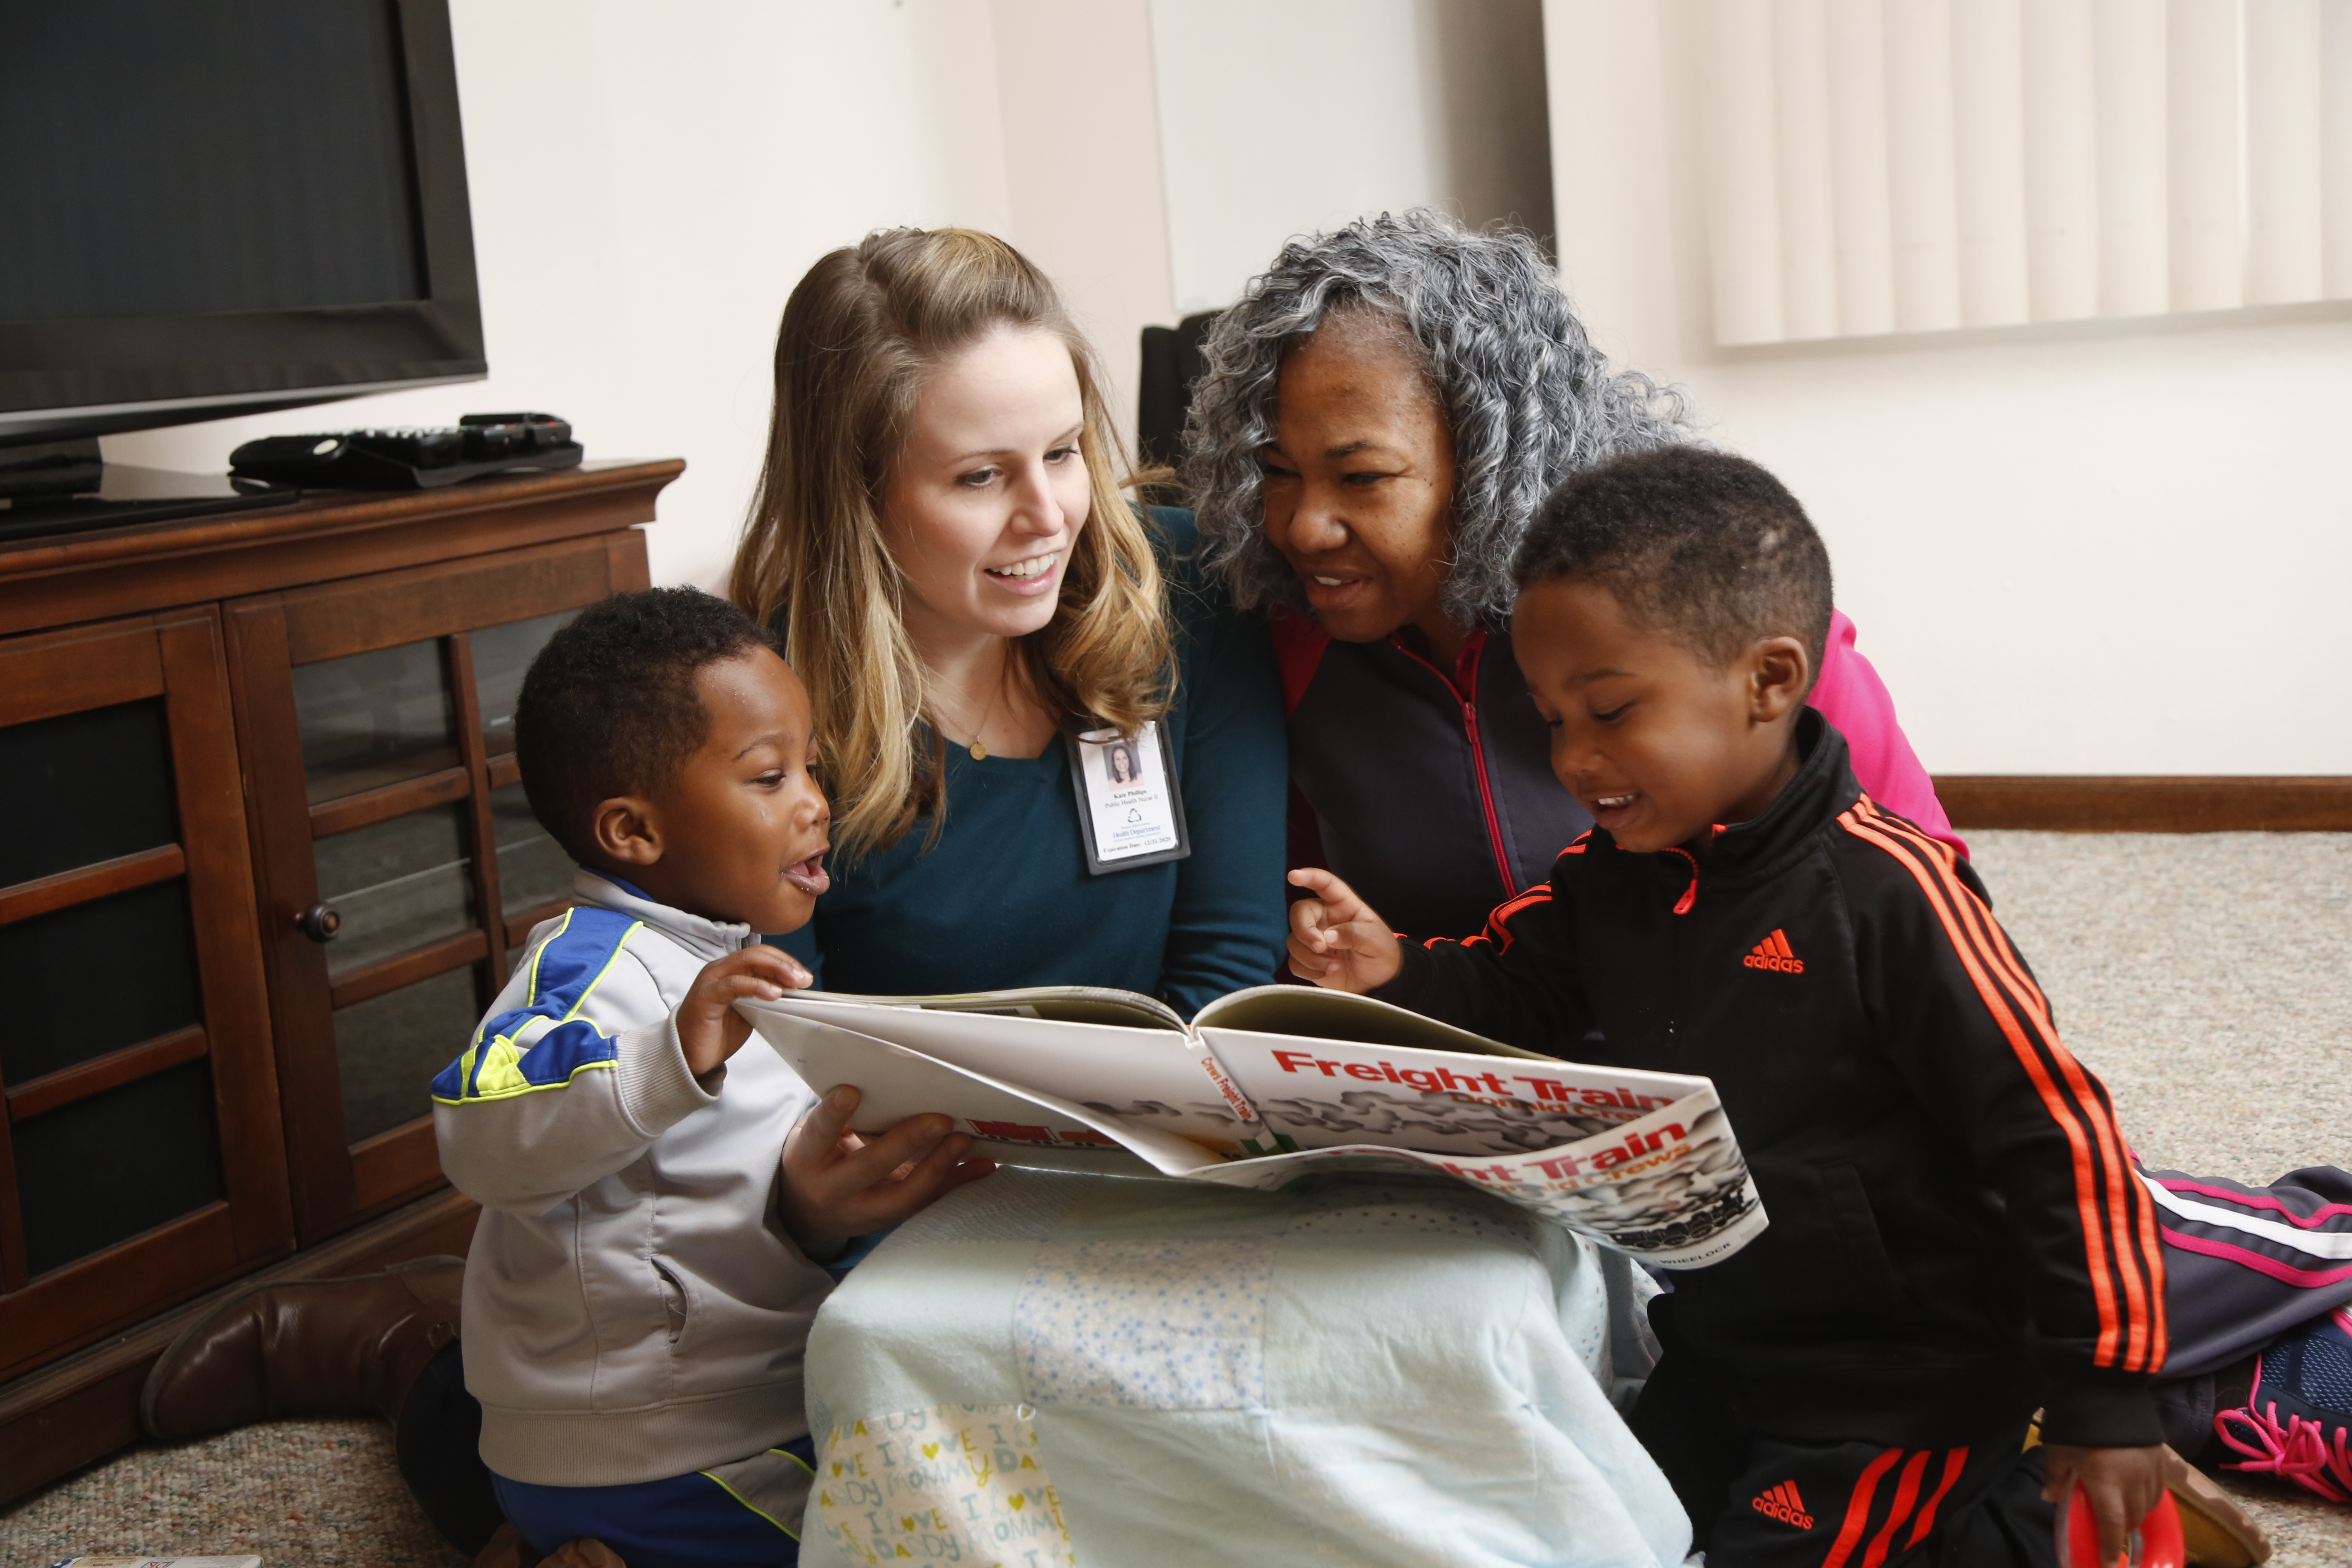 Health Department nurse reading a book with a family